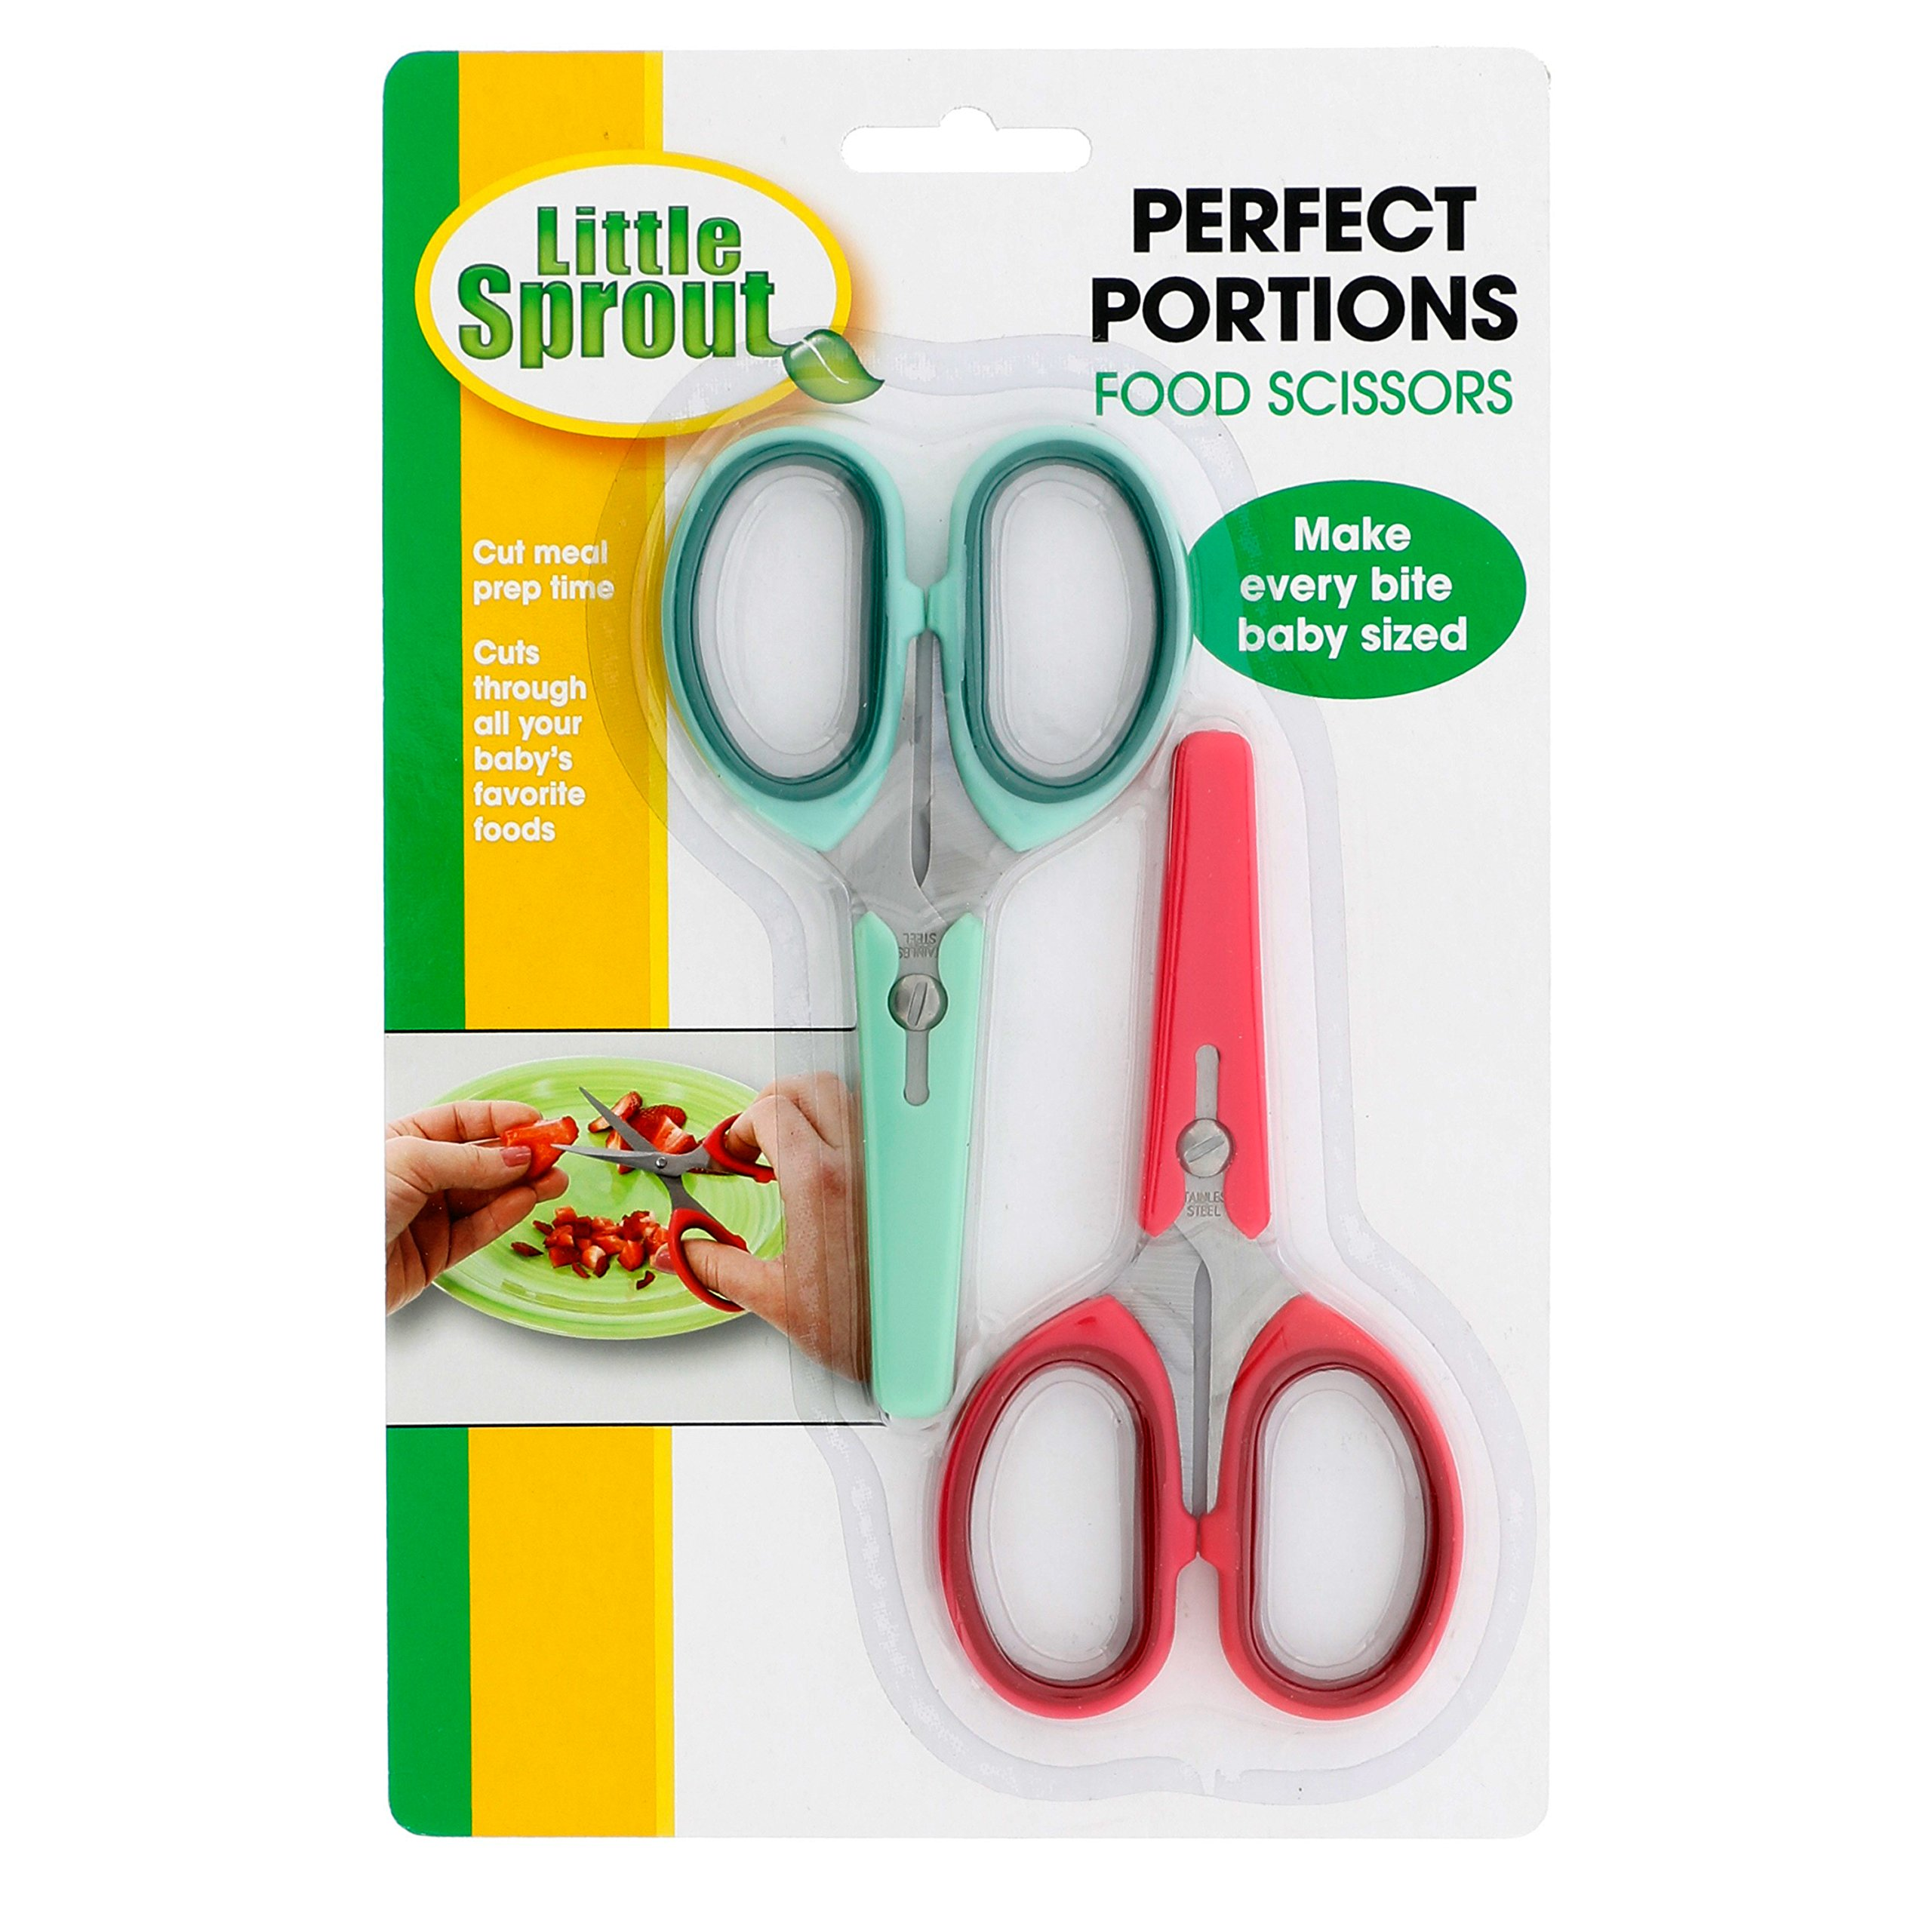 Baby Food Scissors 2 Pack w Covers- Safety Stainless Steel Shears to Make Every Bite Baby Sized and Safe